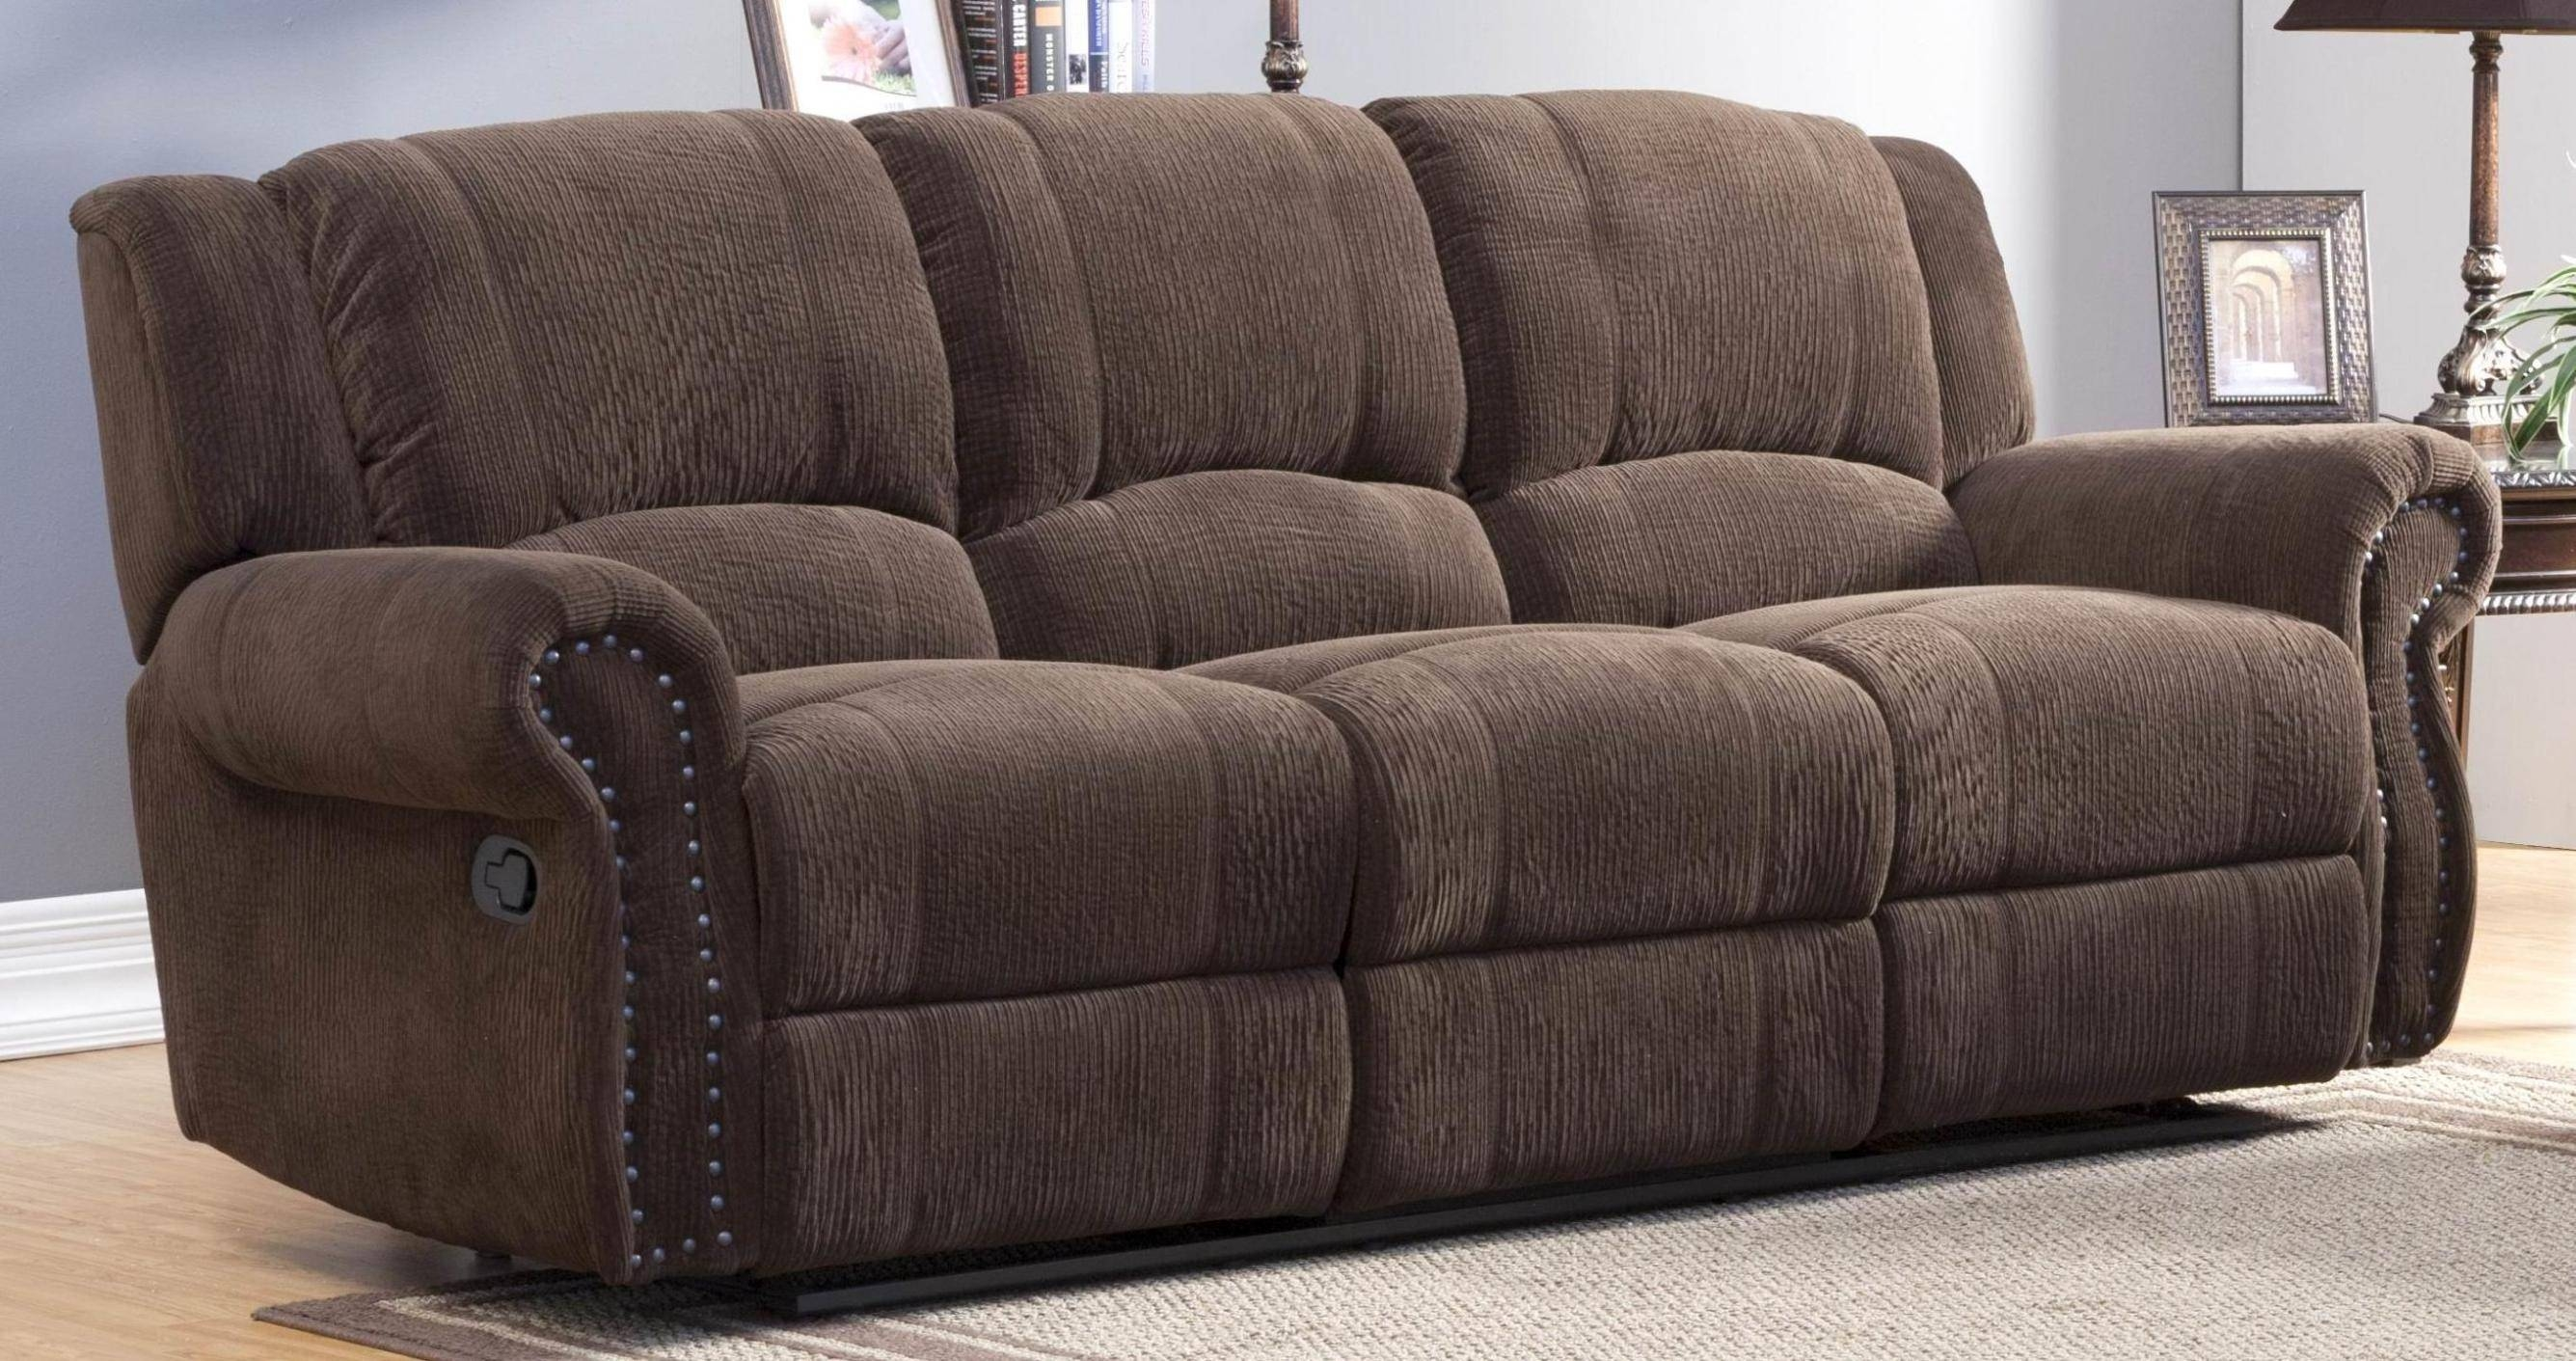 Sectional Sofa With Recliner : Doherty House - Best Slipcovers For for Slipcover For Recliner Sofas (Image 8 of 15)